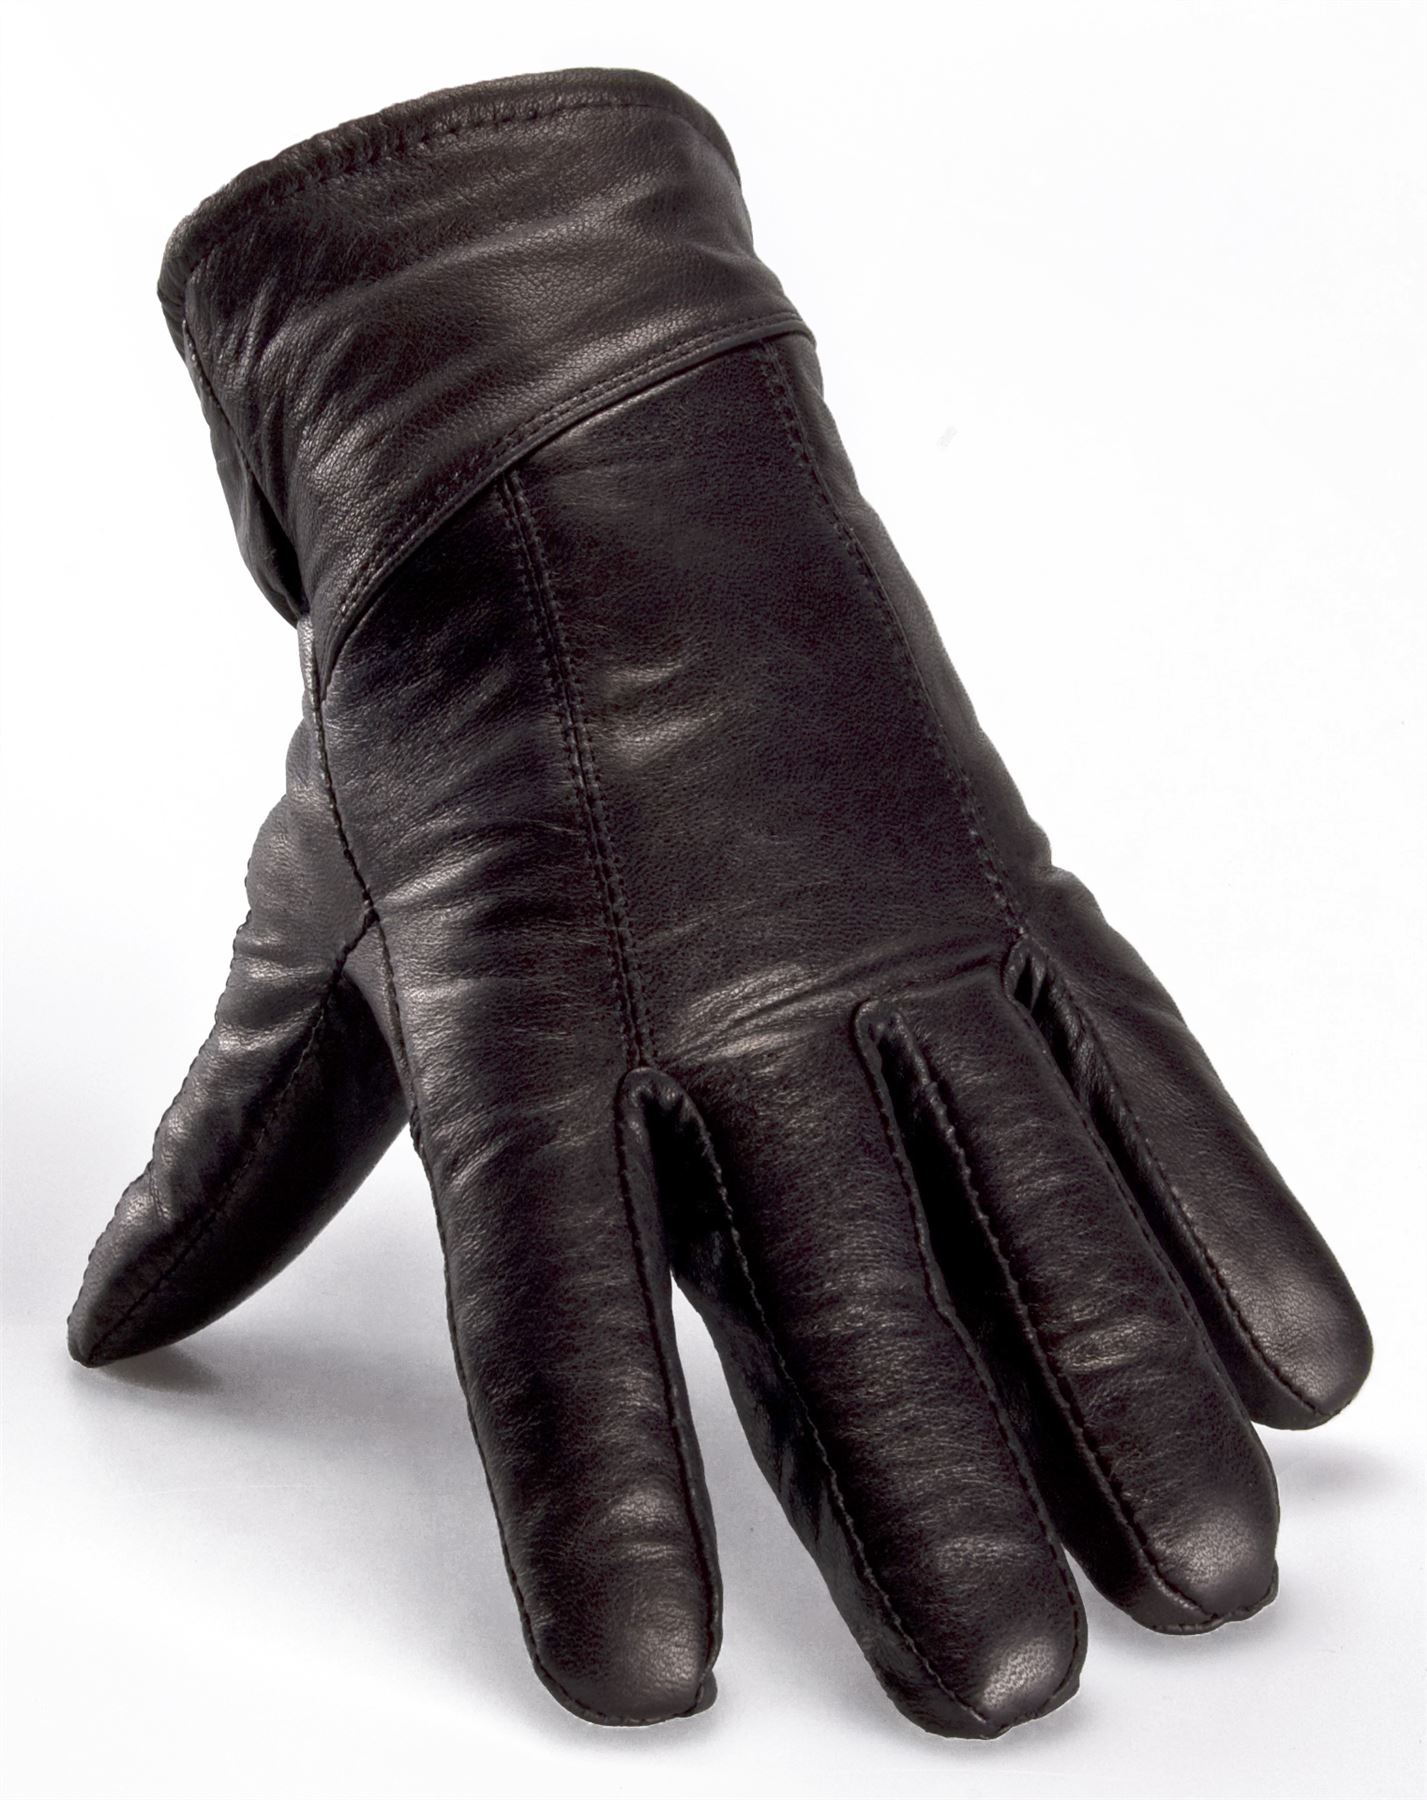 Find great deals on eBay for leather gloves. Shop with confidence.